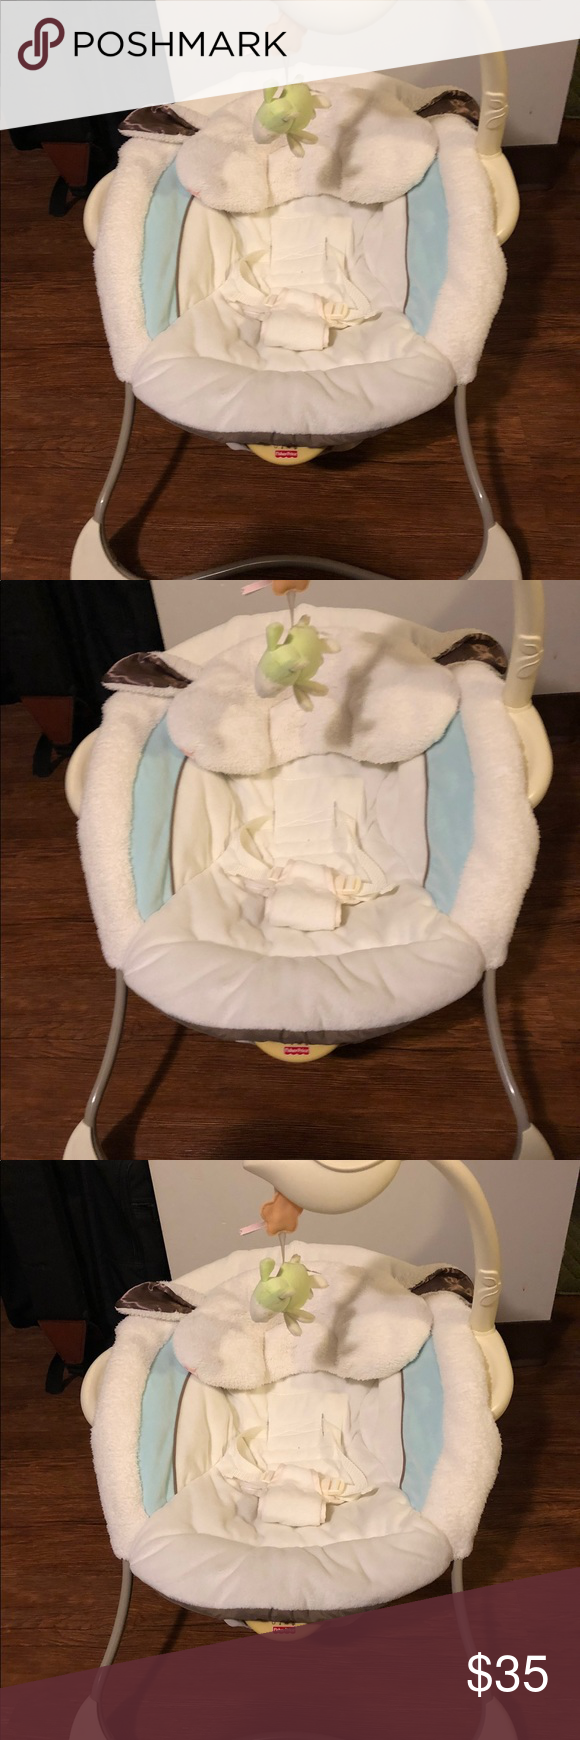 Fisher Price My Little Lamb Baby Bouncer Fisher Price My